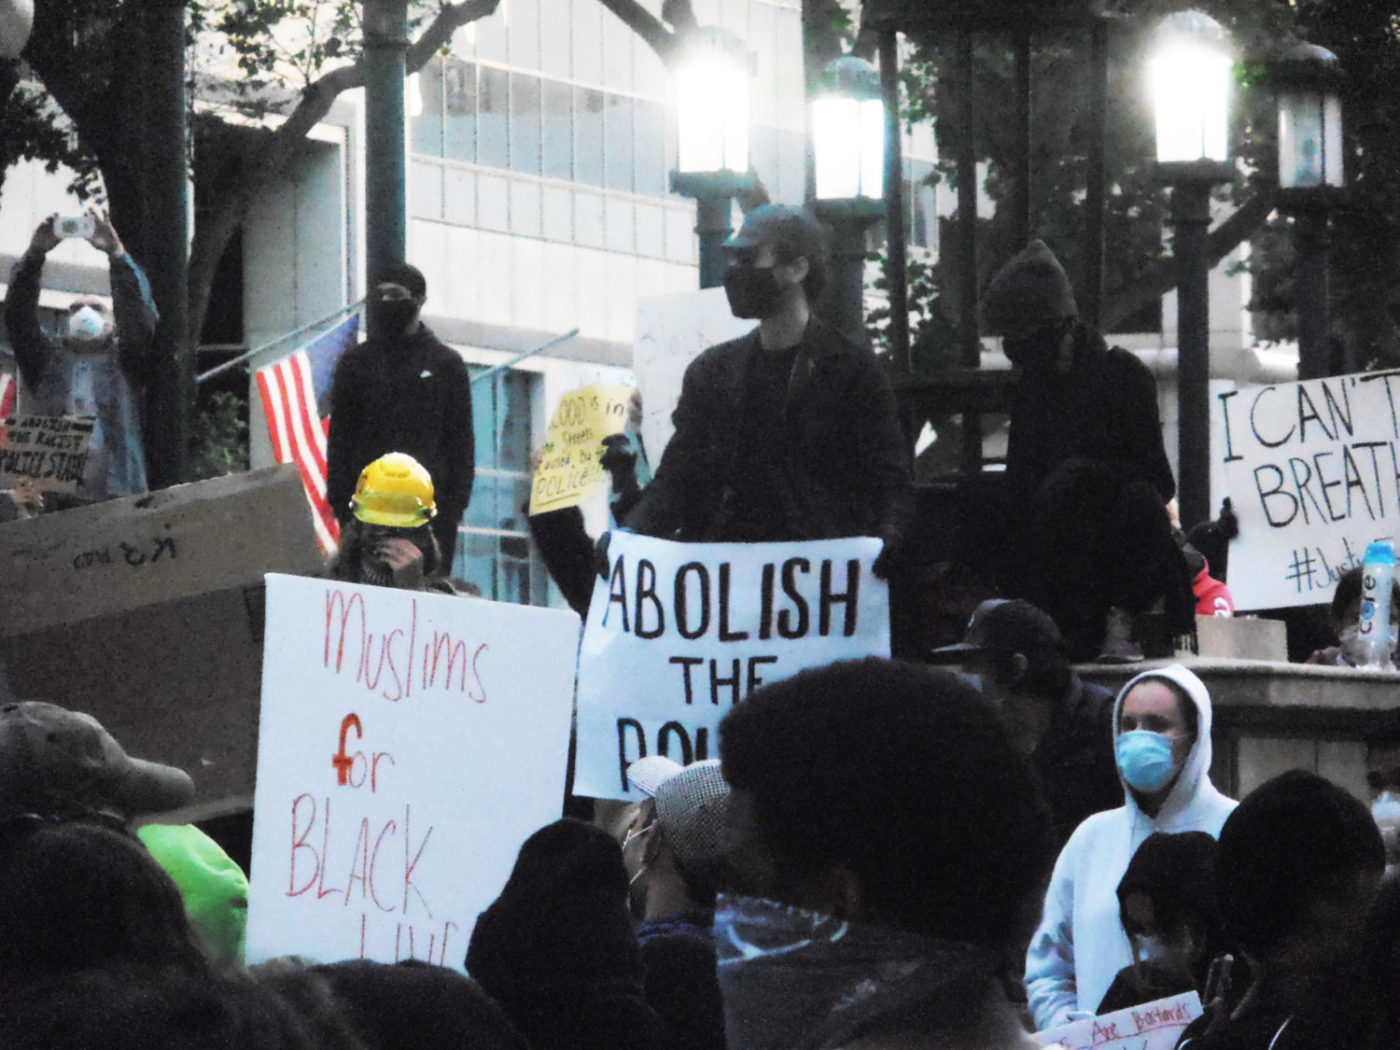 Abolish-the-police-George-Floyd-protest-Oscar-Grant-Plaza-Oakland-052920-by-Jahahara-1400x1050, Advancing African liberation on the daily!, Culture Currents